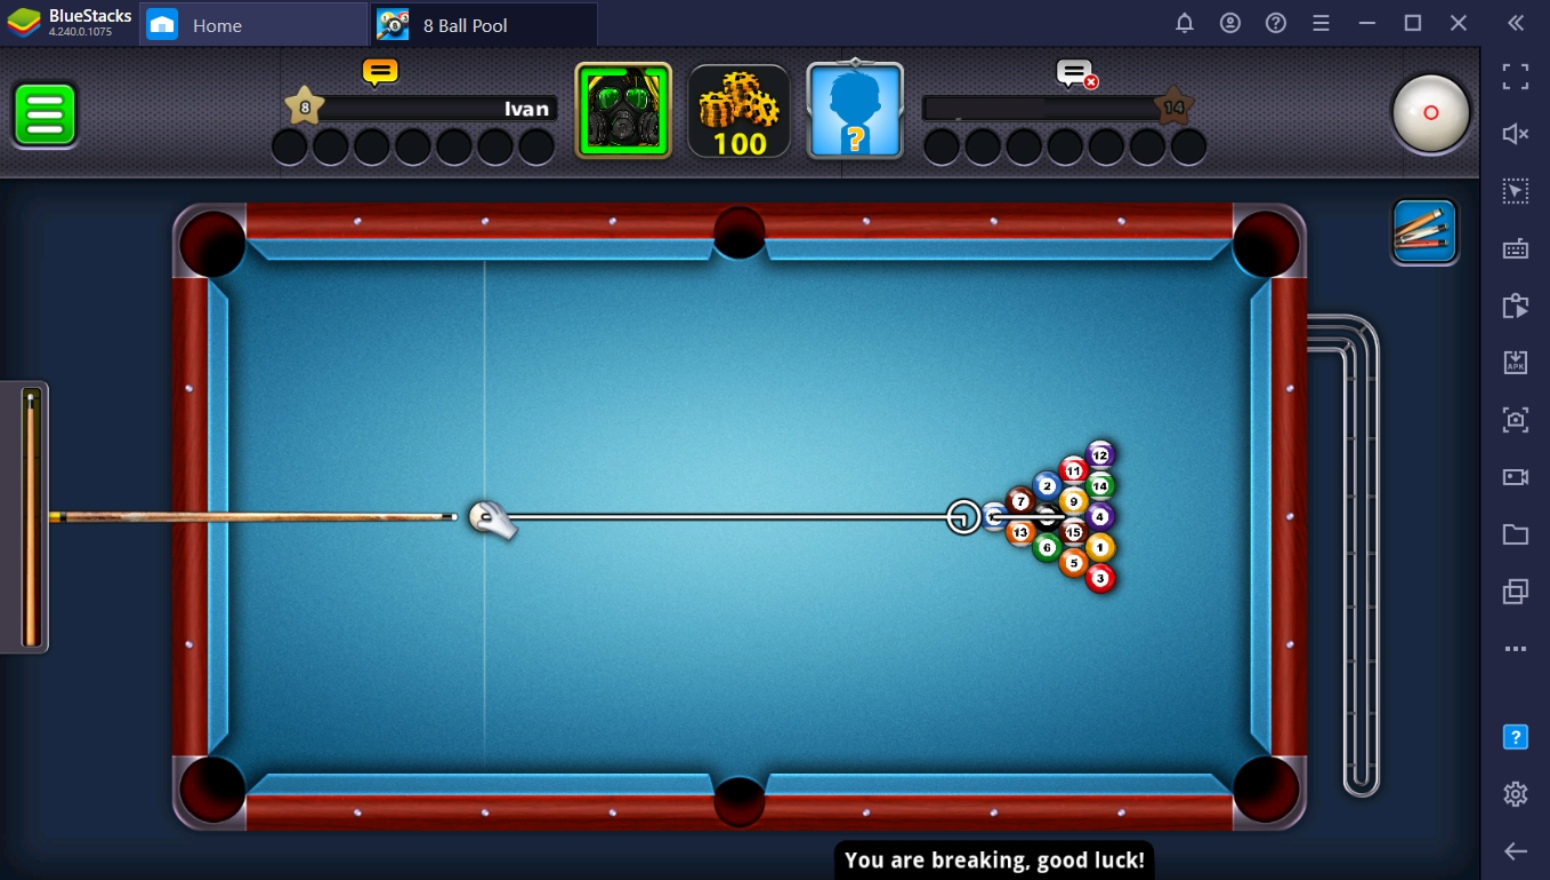 Explaining the Rules of 8 Ball Pool on PC with BlueStacks